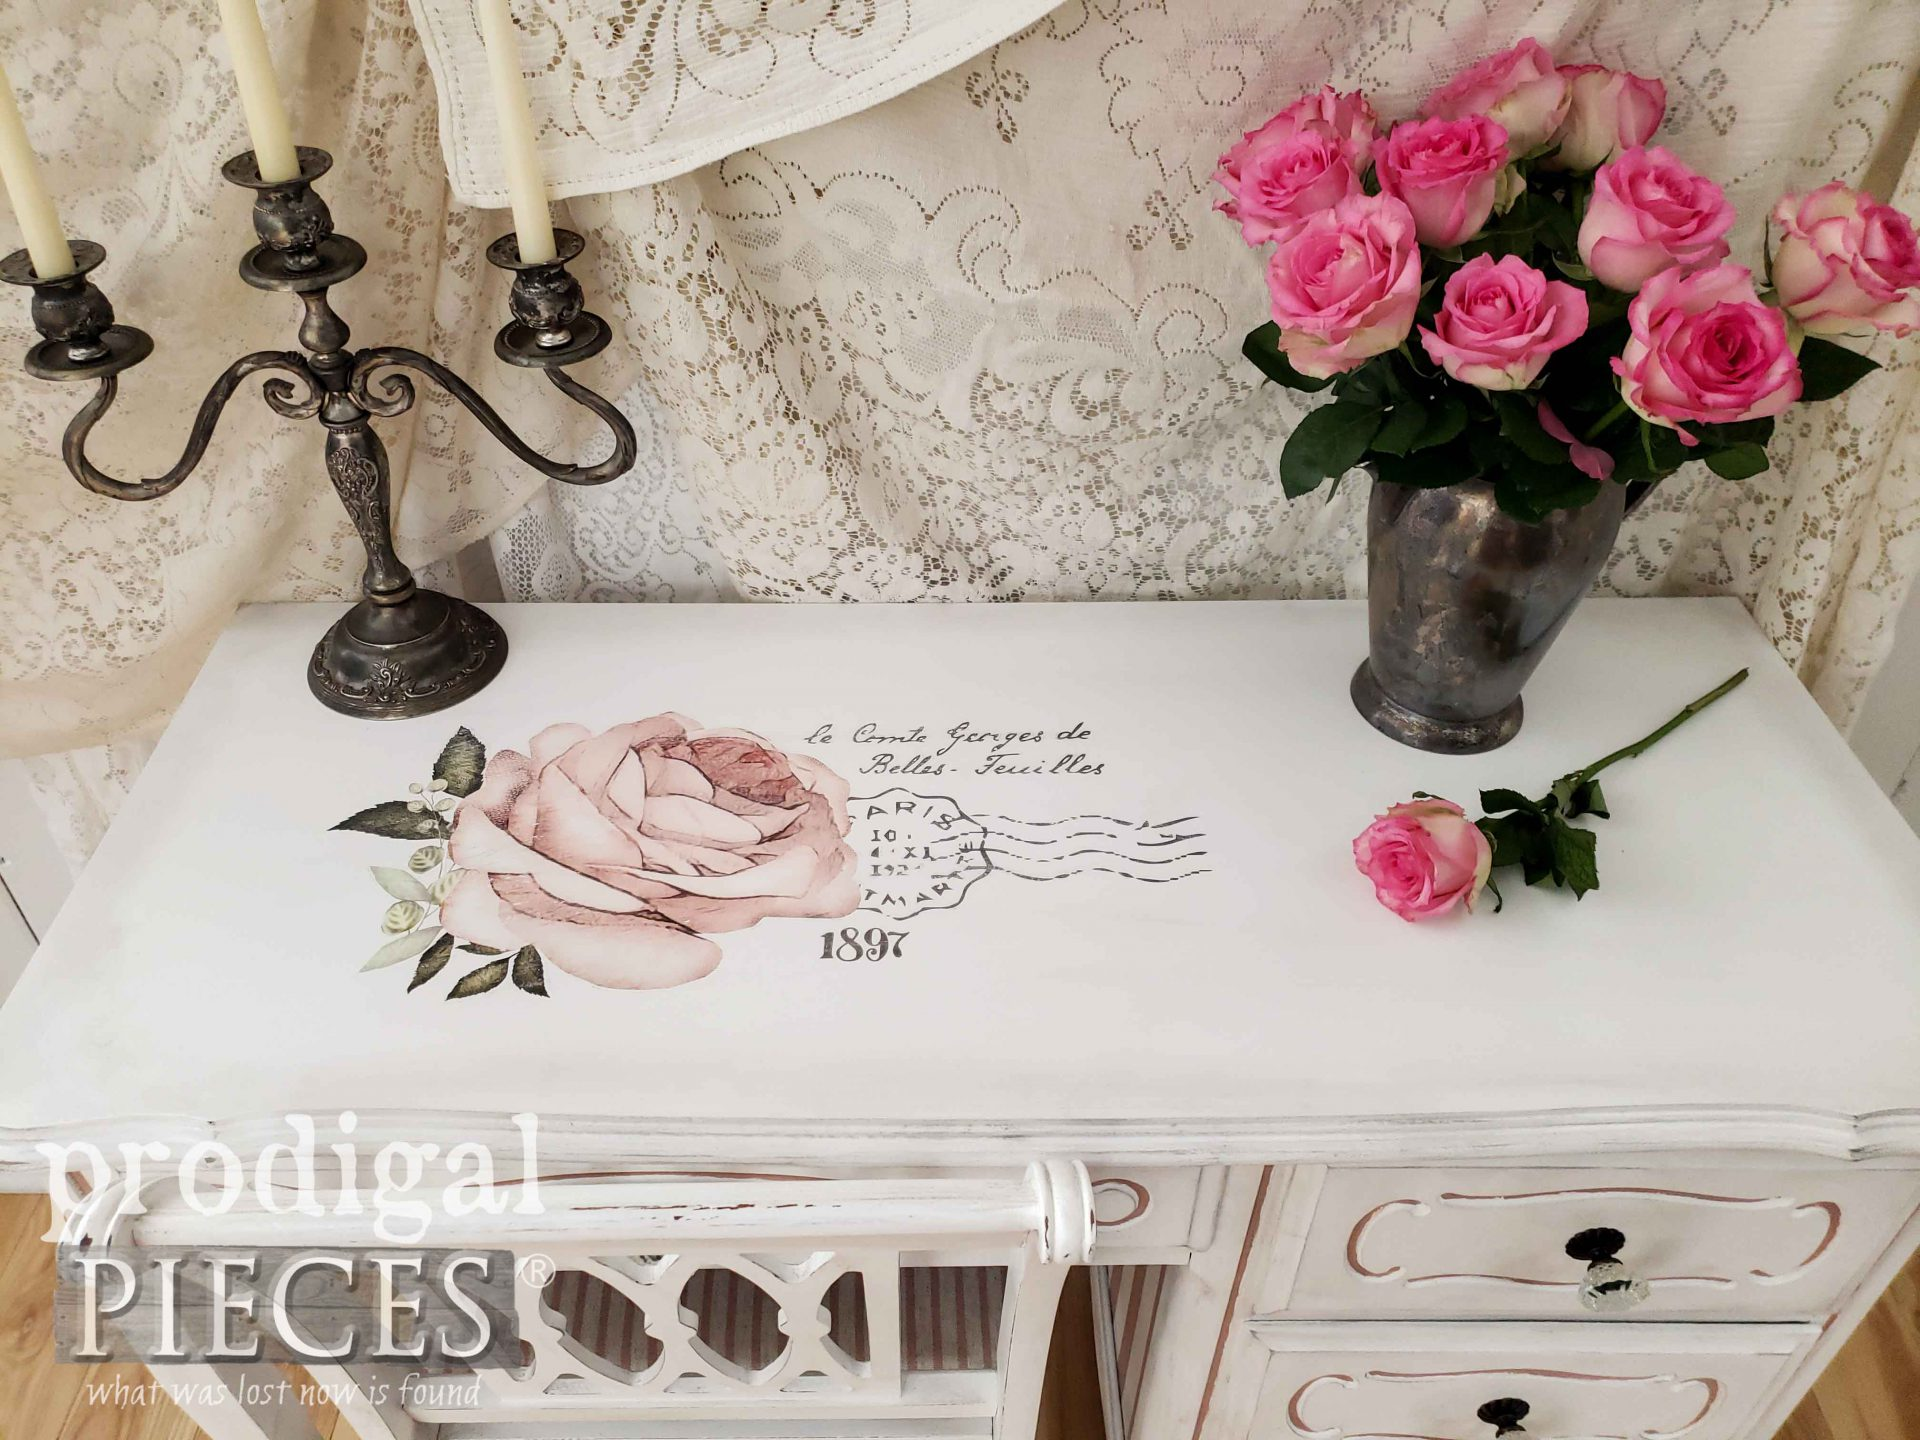 Shabby Chic French Provincial Desk Top with Rose Graphic by Larissa of Prodigal Pieces | prodigalpieces.com #prodigalpieces #diy #home #homedecor #furniture #shabbychic